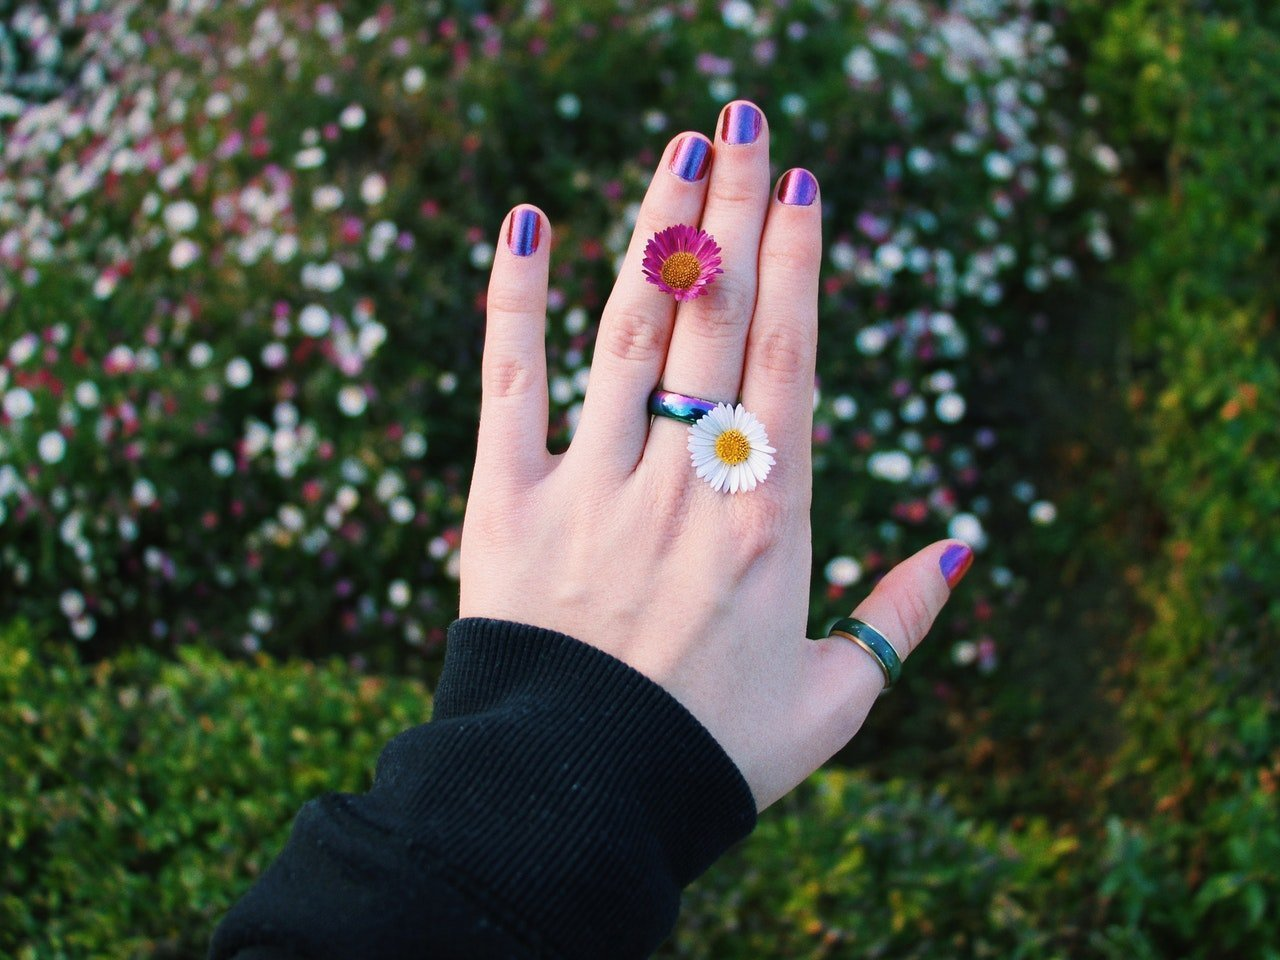 Are There Subliminal Messages In Broken Fingernails?